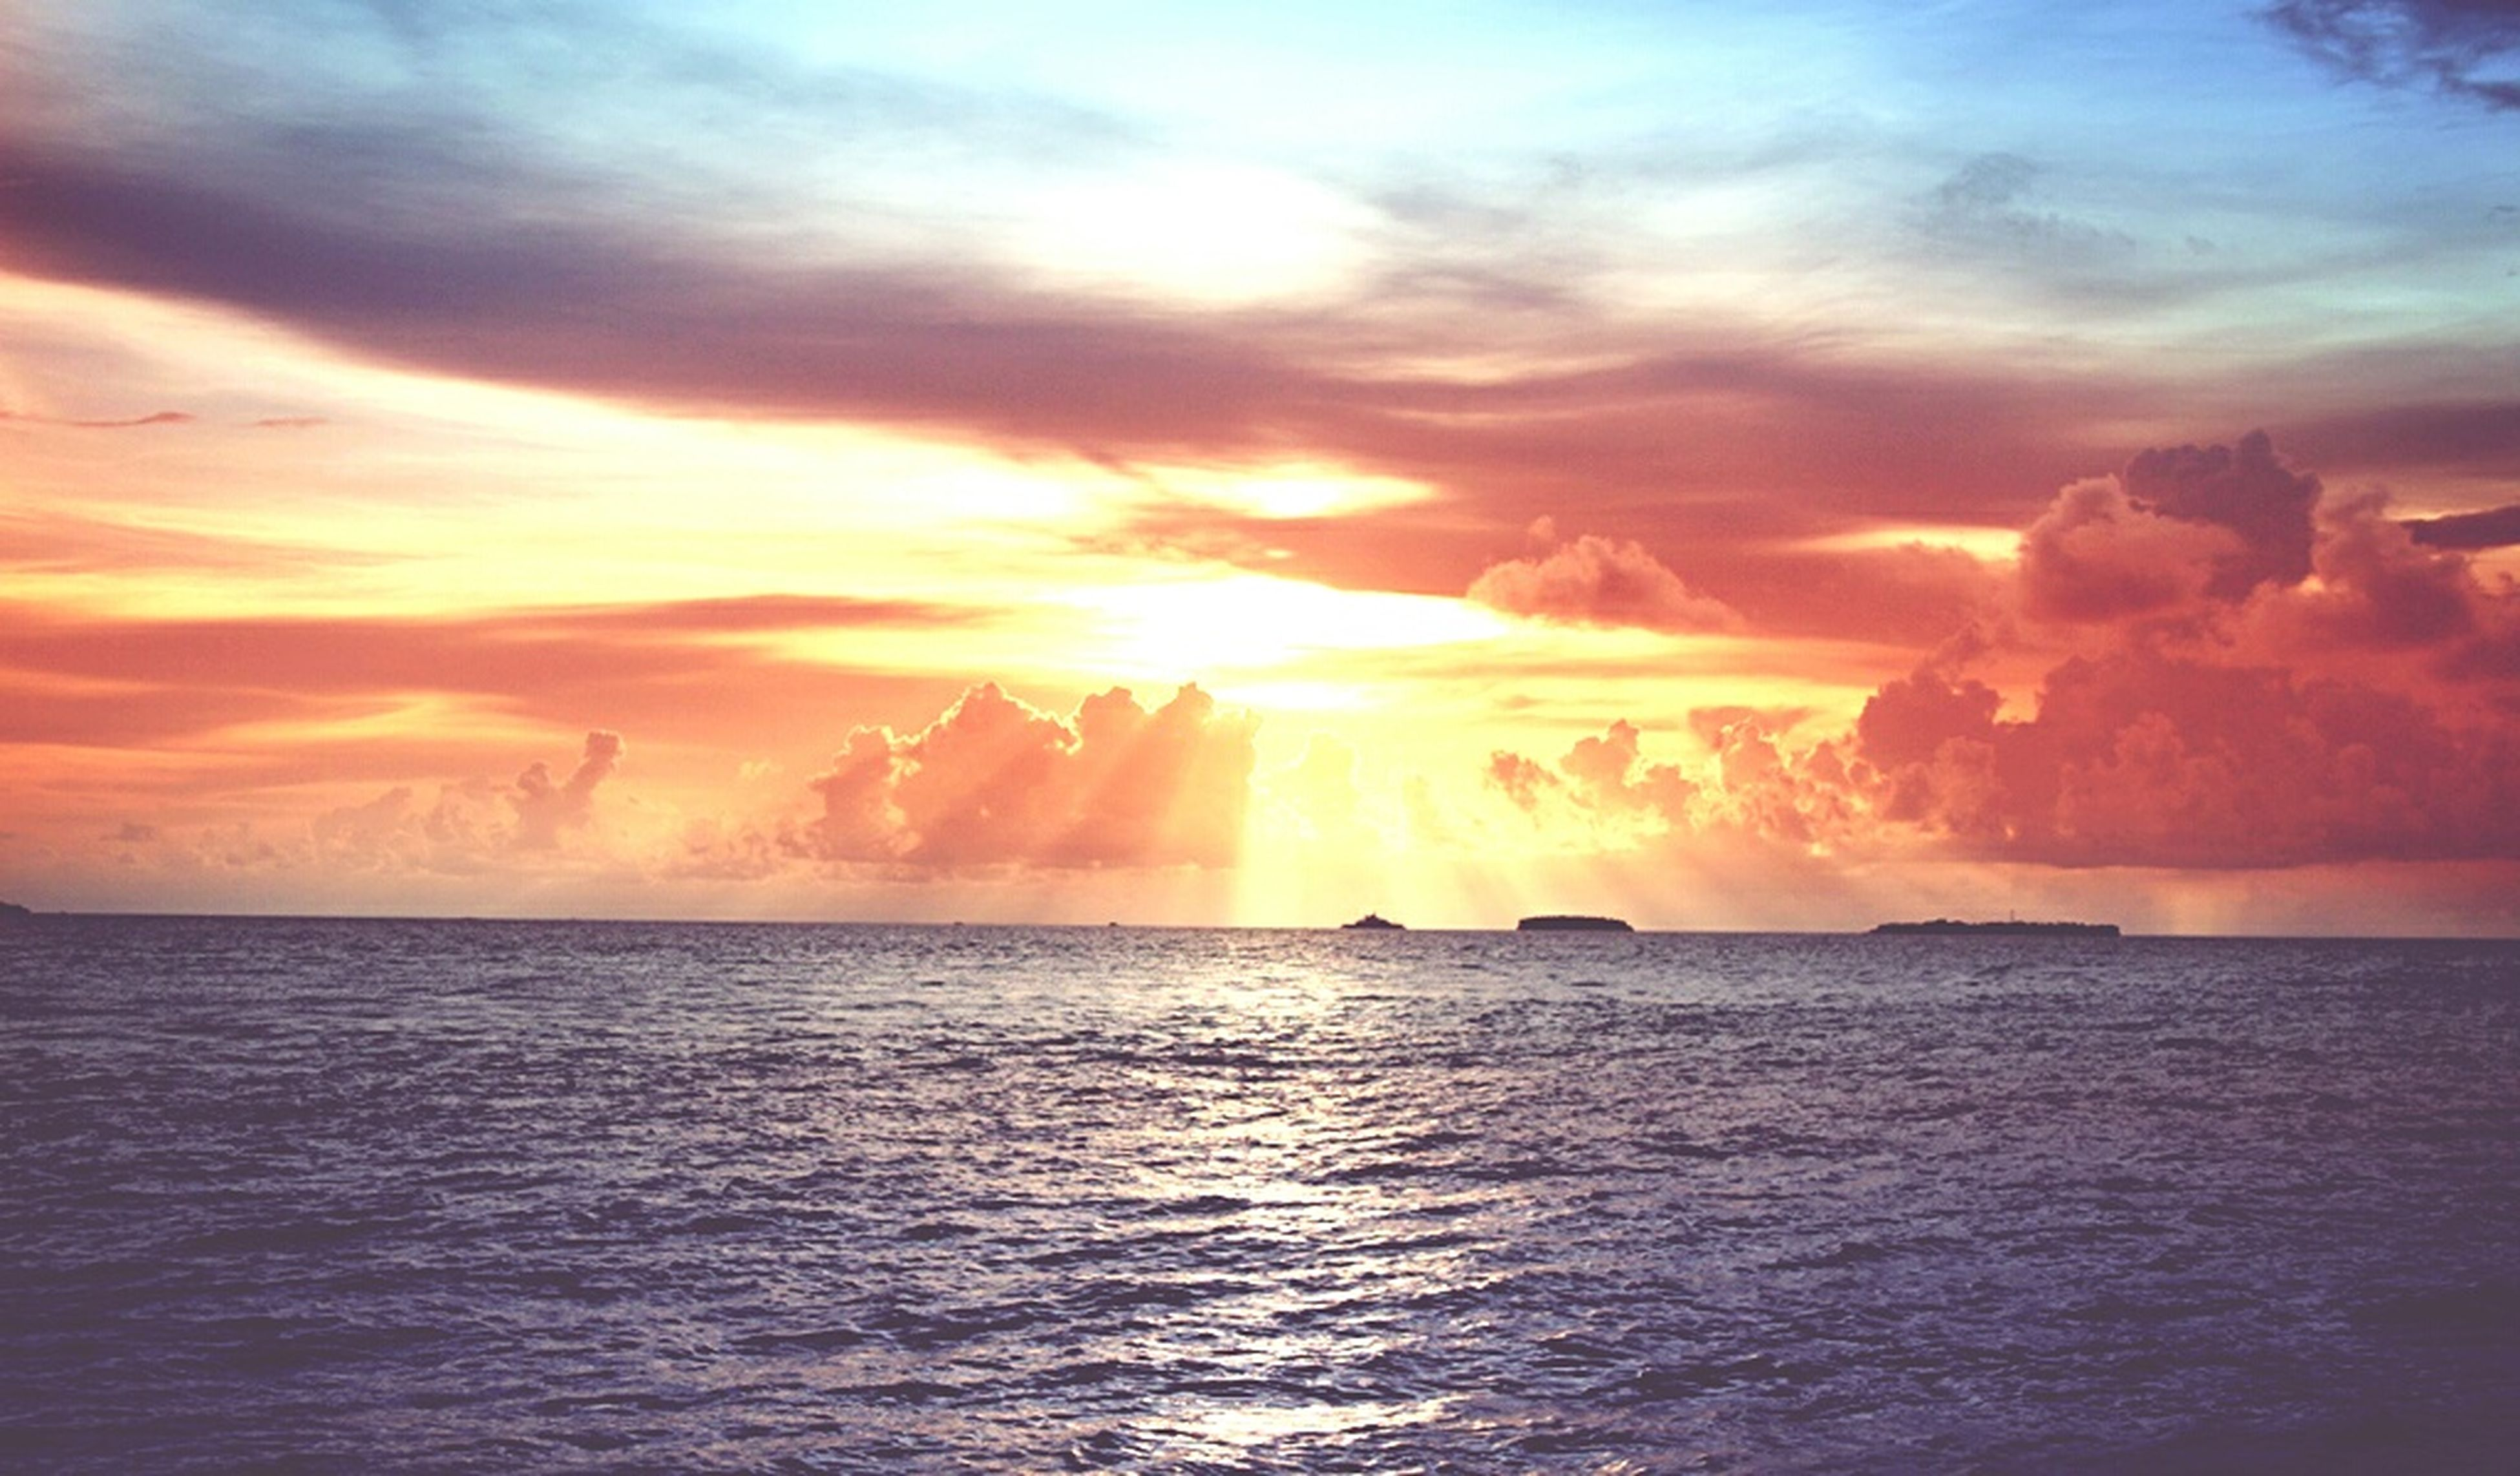 sunset, sea, water, scenics, sky, tranquil scene, beauty in nature, horizon over water, waterfront, tranquility, cloud - sky, orange color, idyllic, sun, nature, cloud, cloudy, dramatic sky, rippled, seascape